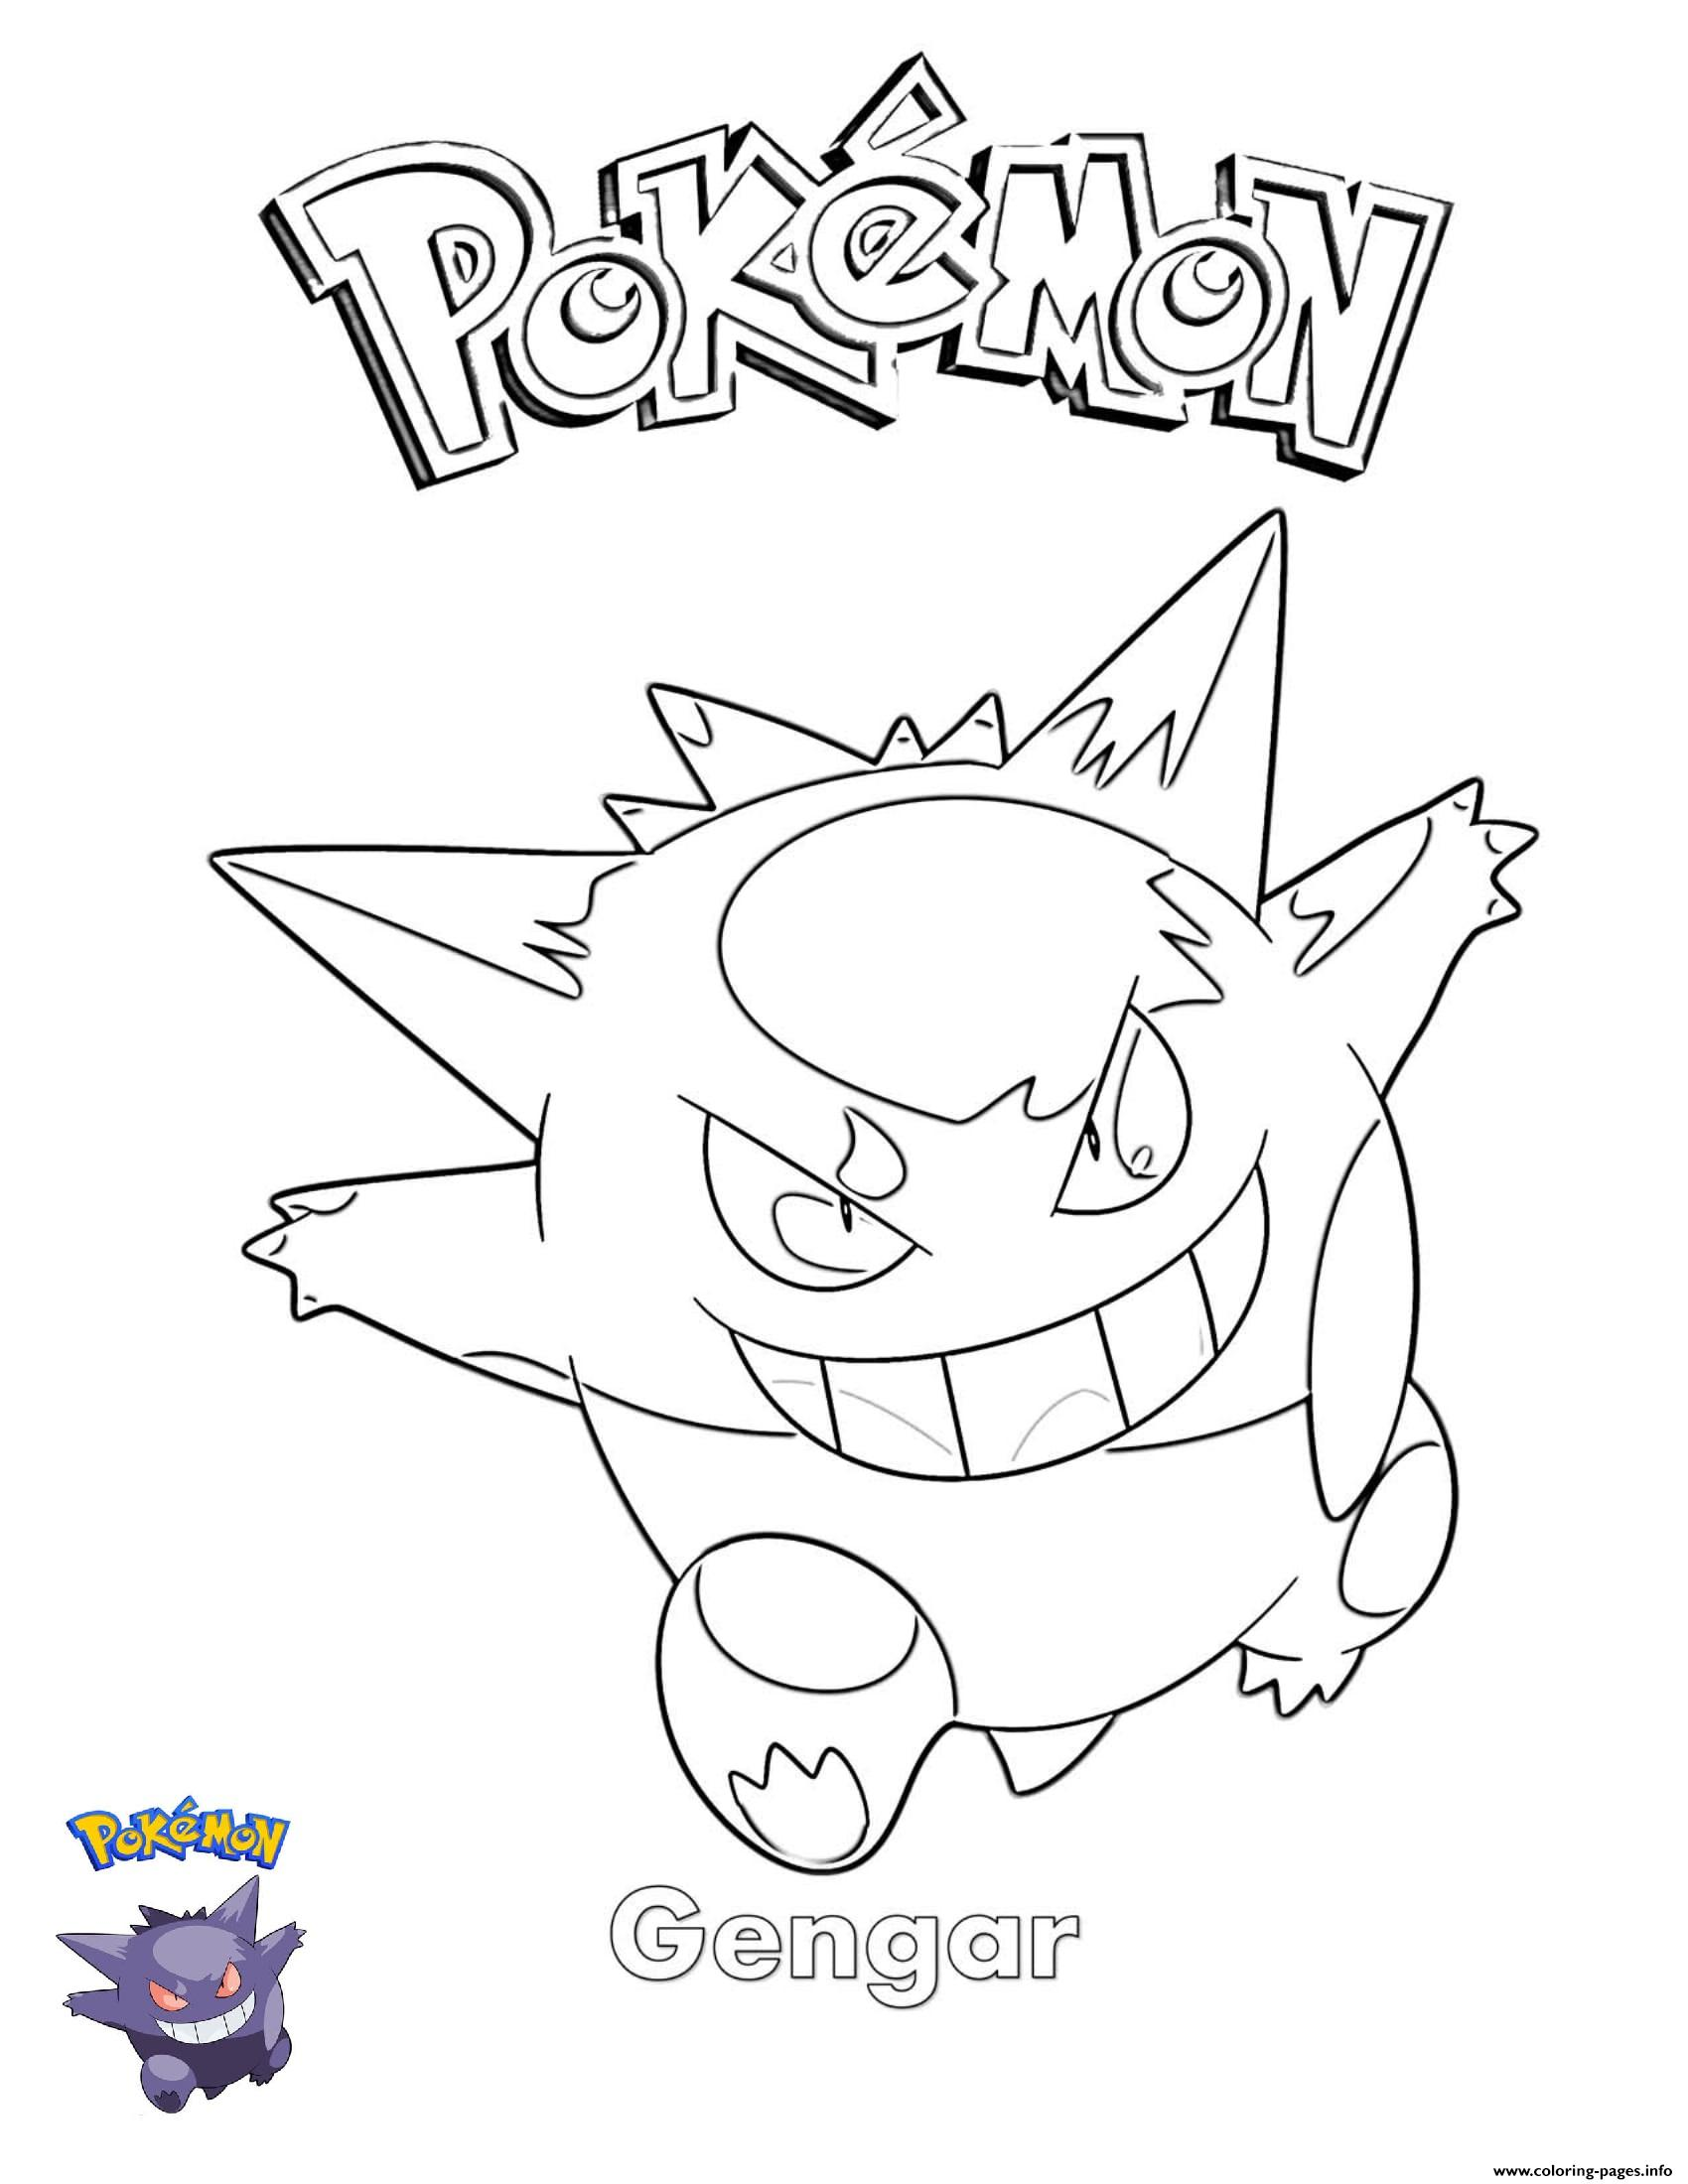 Gengar Pokemon coloring pages